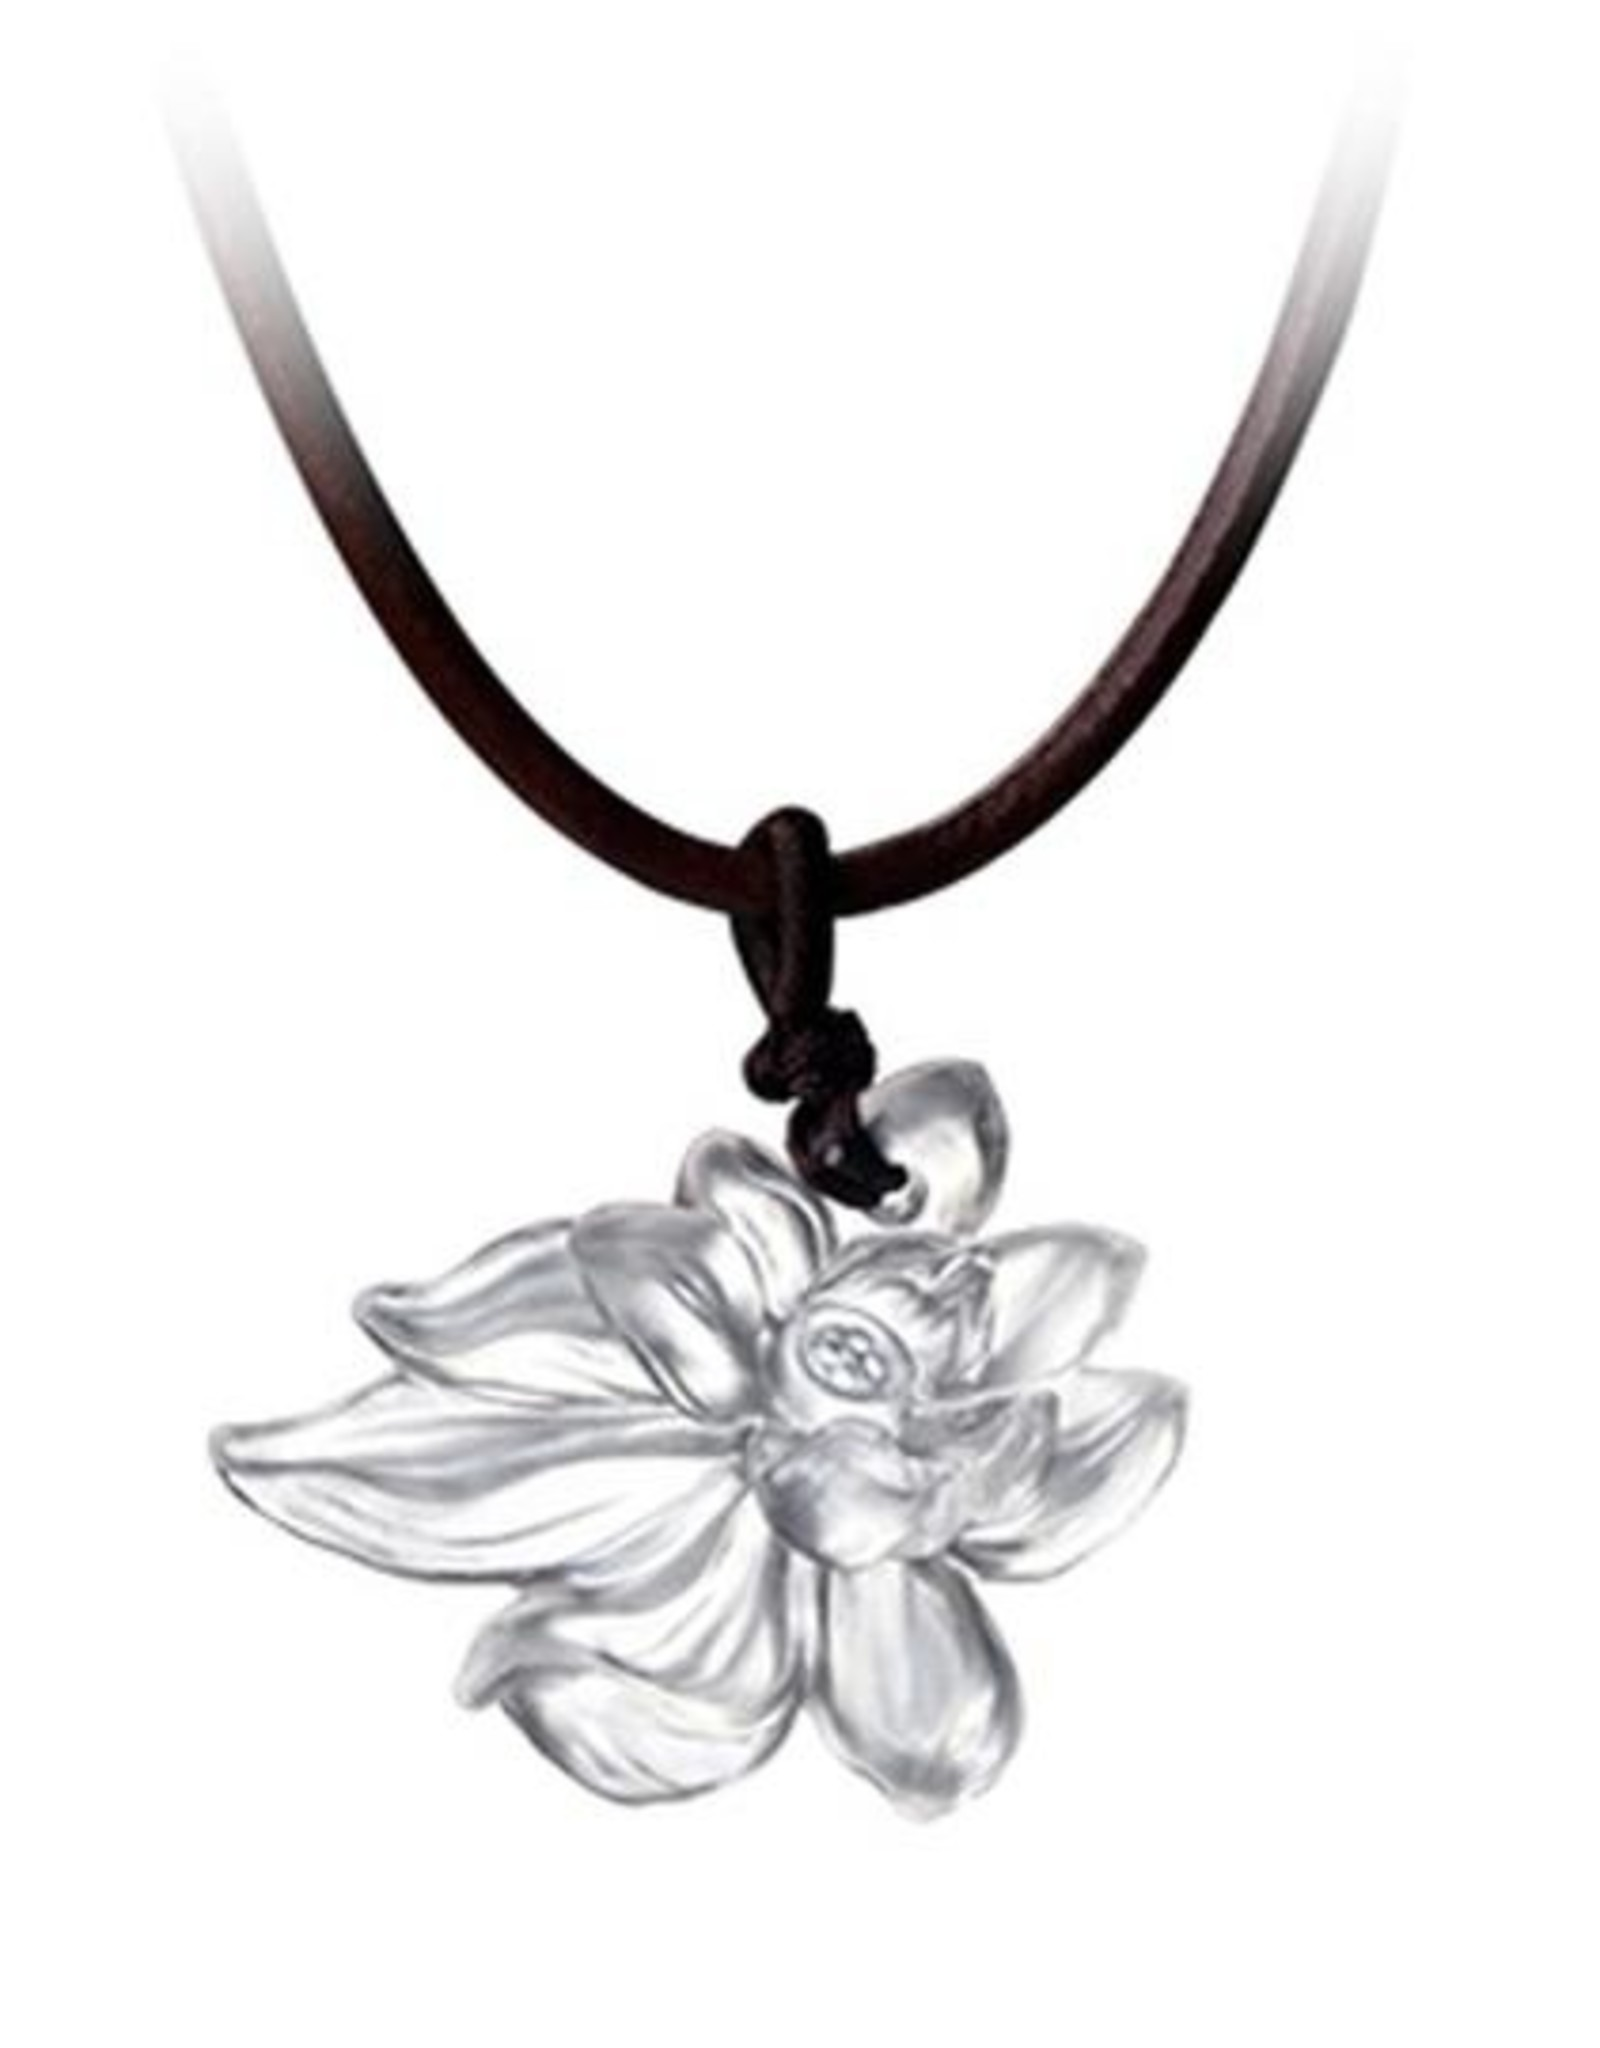 """LIULI Crystal Art Crystal Lotus """"Heart of Purity"""" Pendant Necklace in Powder White (Limited Edition)"""